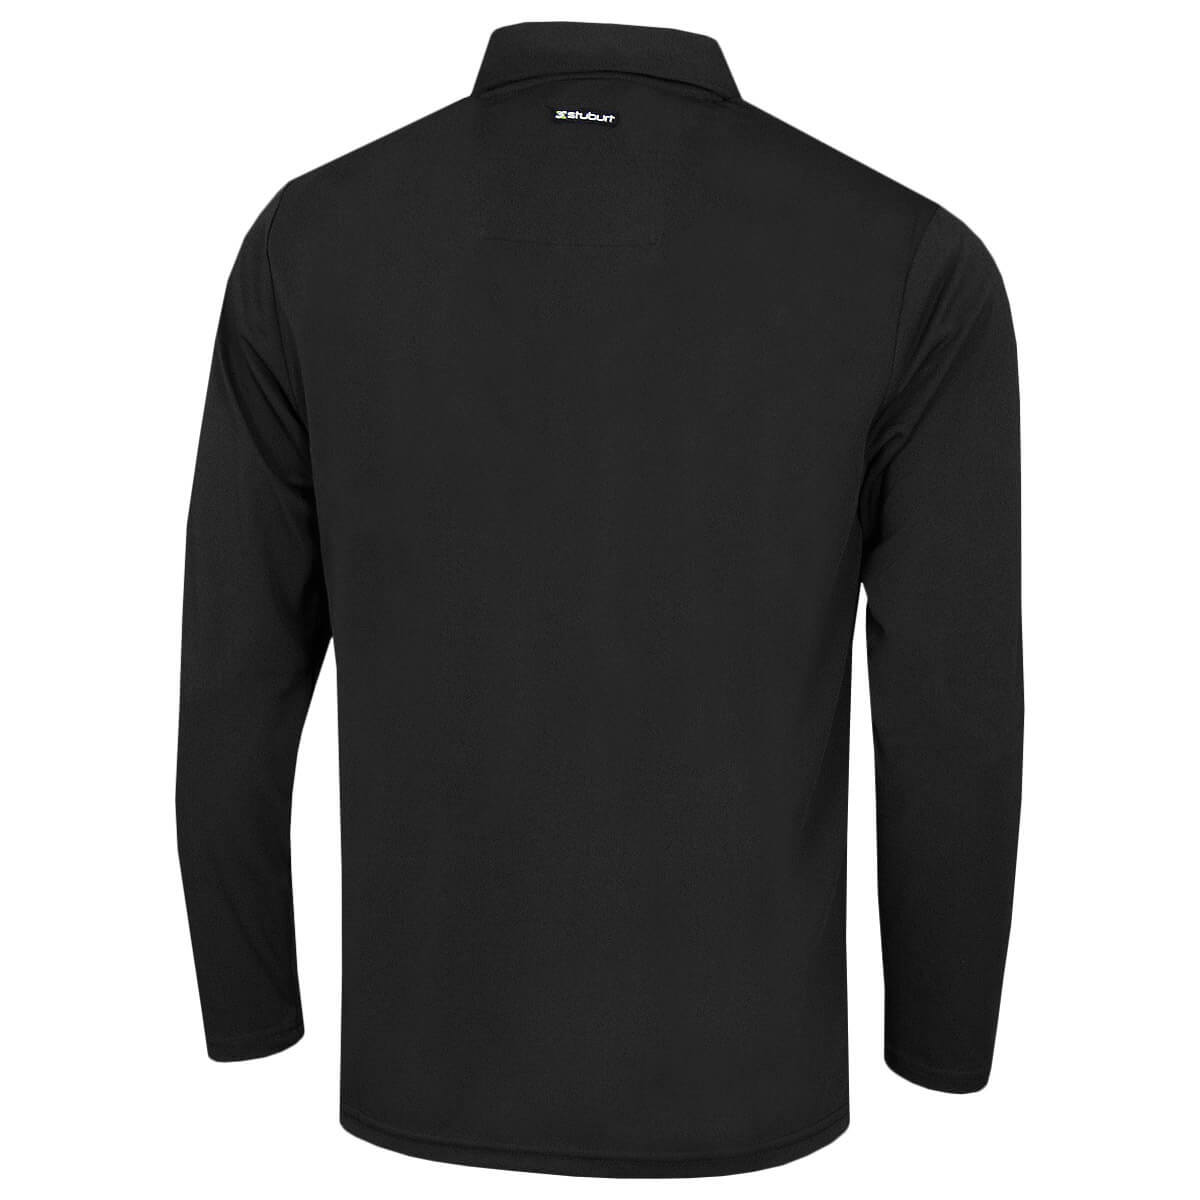 Stuburt-Mens-Urban-Long-Sleeve-Wicking-Breathable-Golf-Polo-Shirt-33-OFF-RRP thumbnail 5